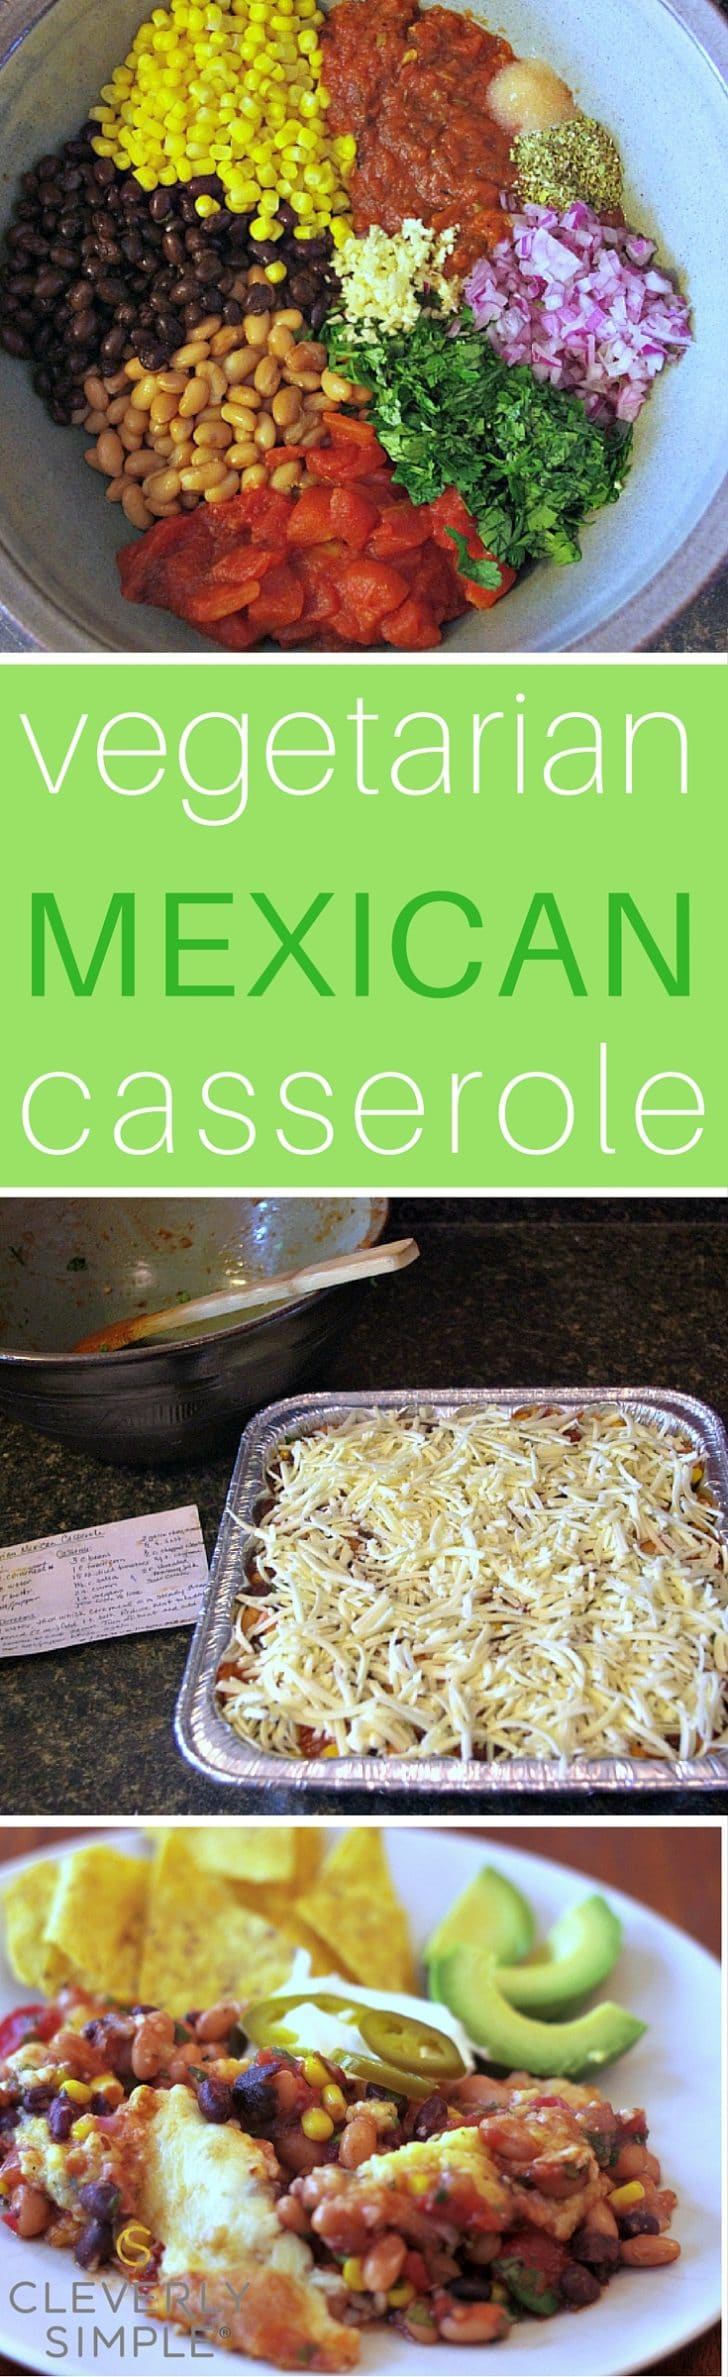 Easy Vegetarian Mexican Casserole that is healthy for your whole family.